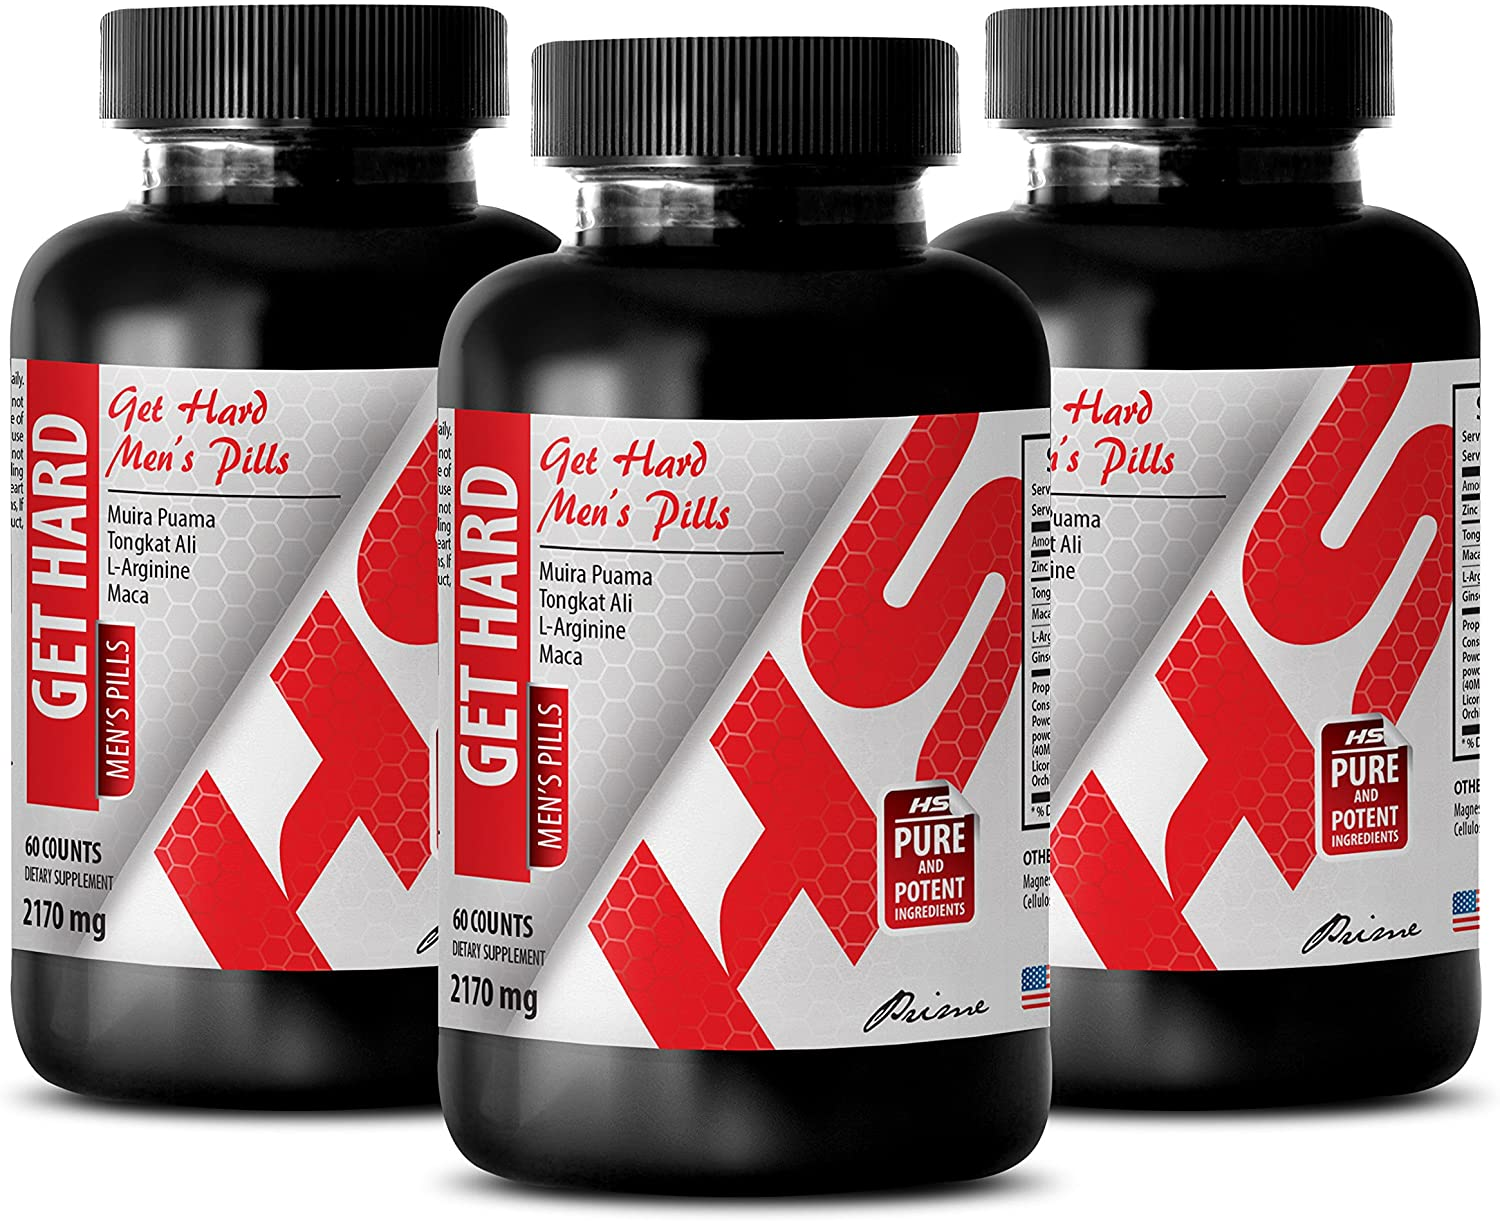 Testosterone Booster longjack - GET Hard - Mens Pills - maca Bulk Supplements - 3 Bottles (180 Capsules)